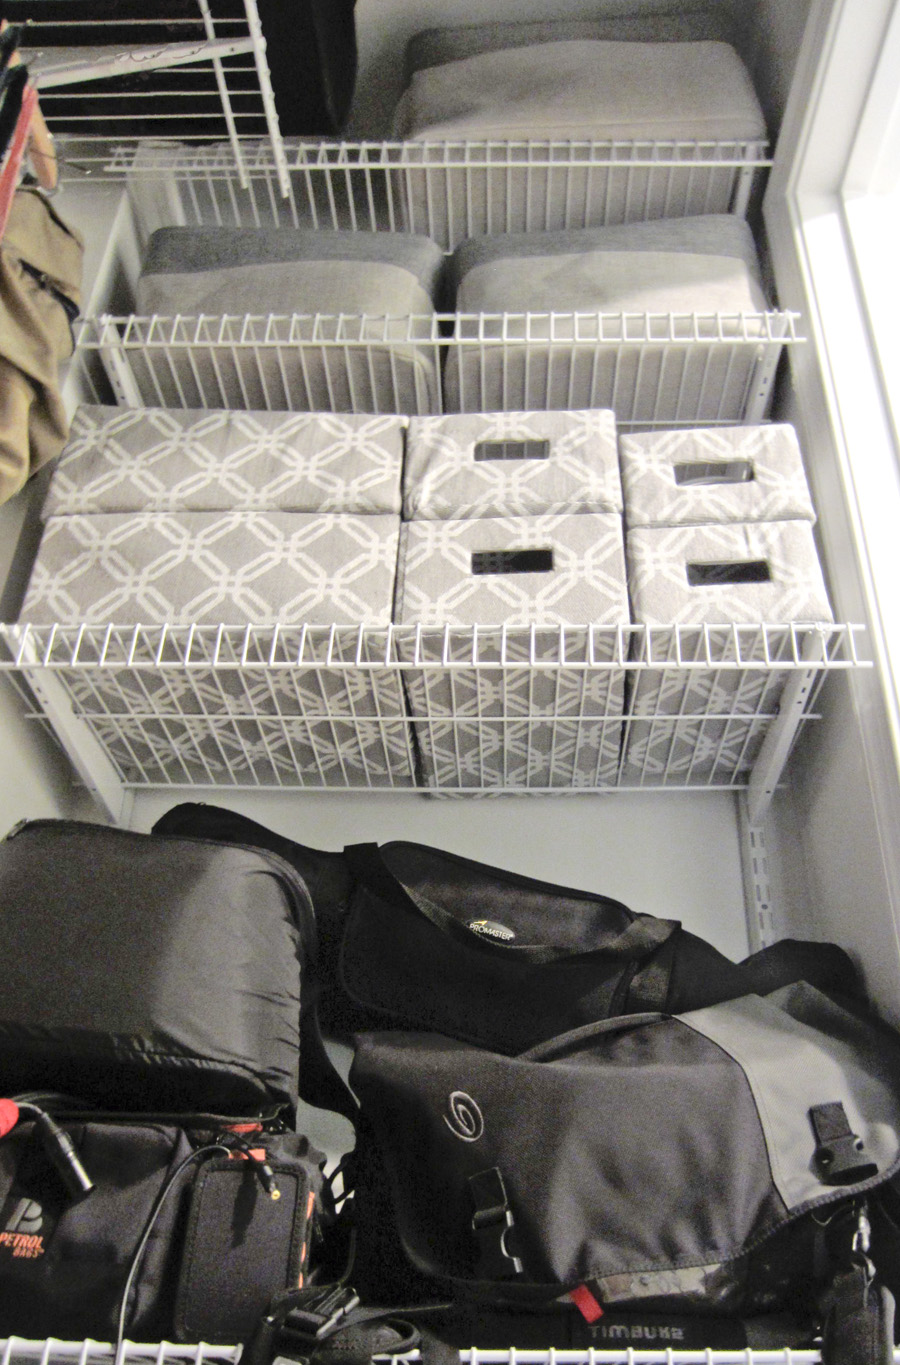 Eli's camera gear is organized in bins and bags